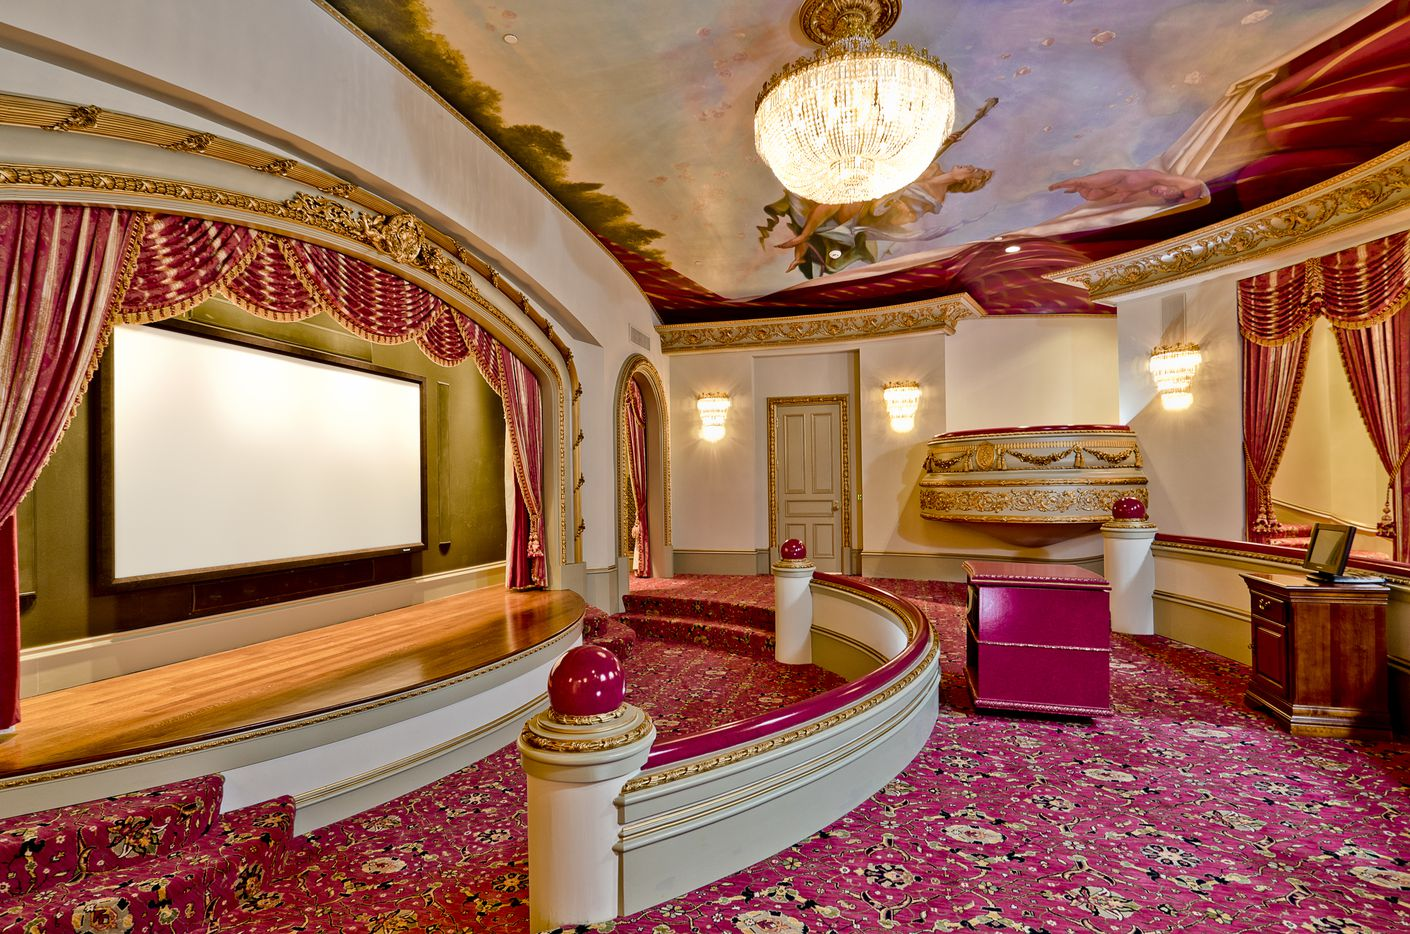 The movie theater in the Champ D'Or mansion.